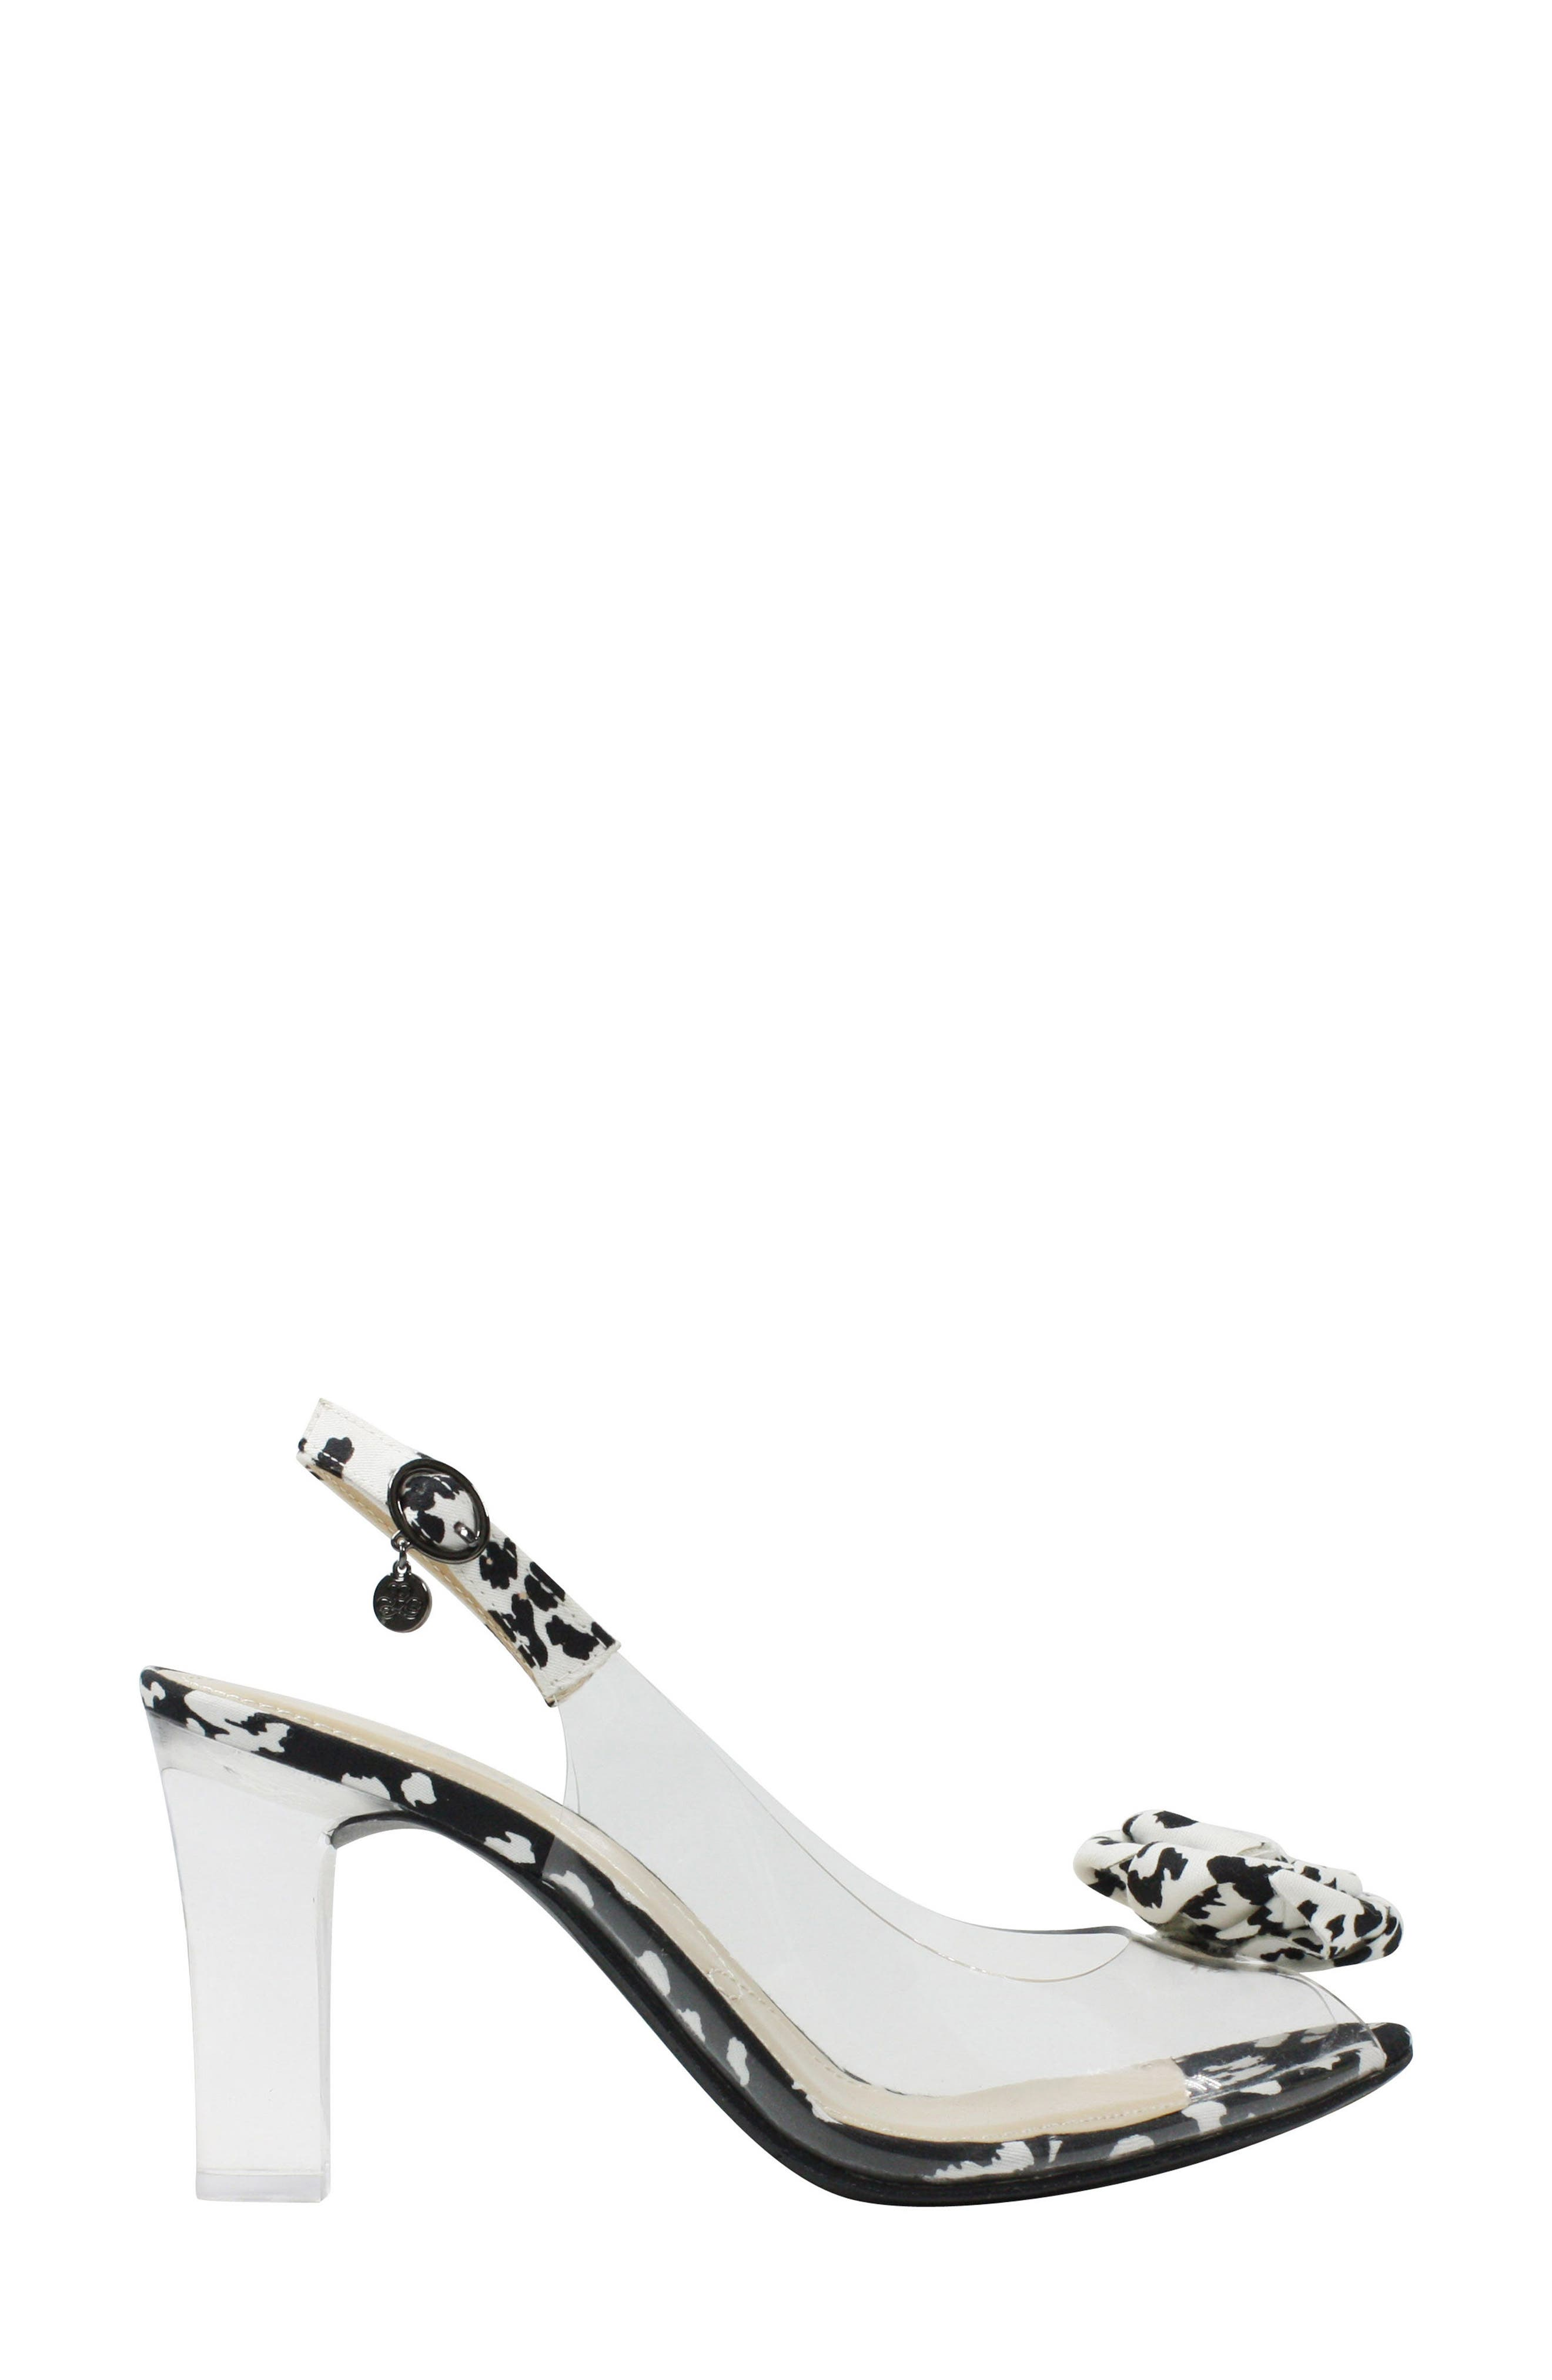 J. RENEÉ, Adoracion Slingback Sandal, Alternate thumbnail 3, color, CLEAR/ BLACK/ WHITE